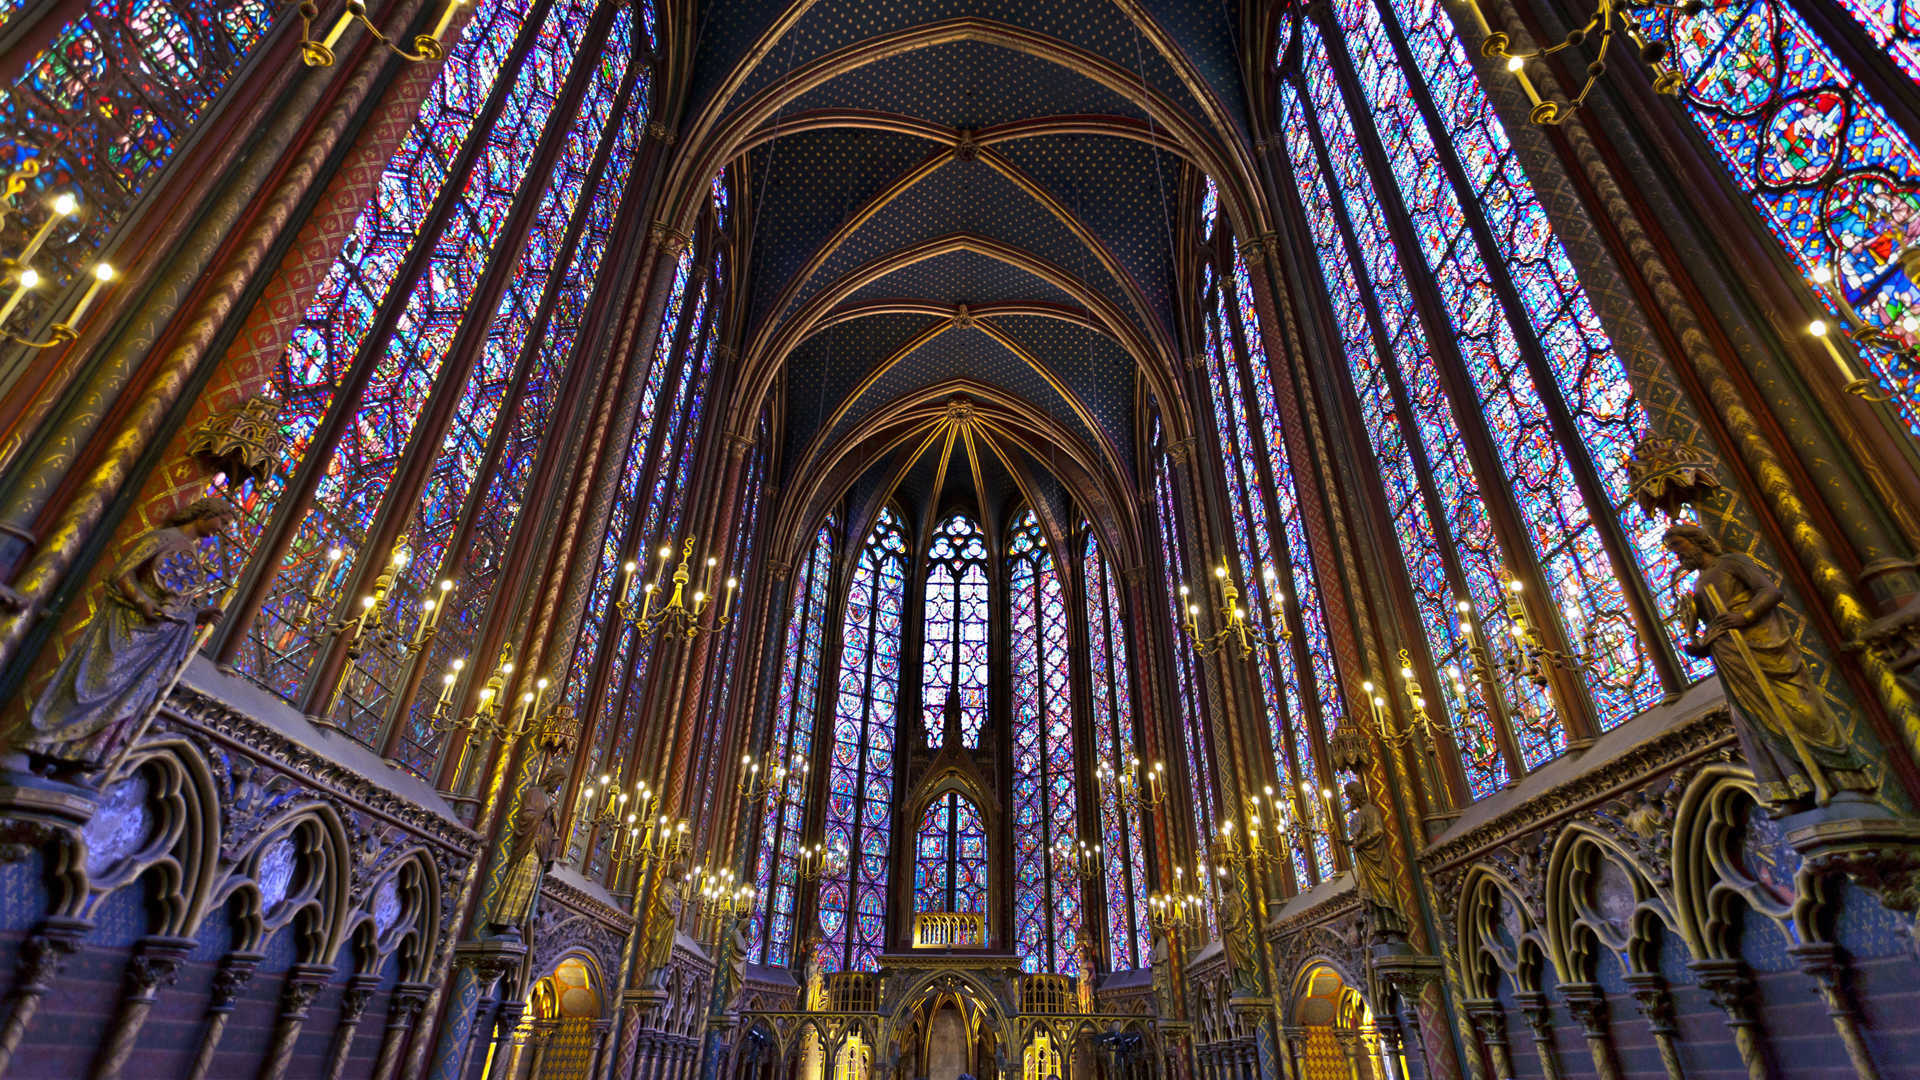 Paris: the interior of St. Chappelle